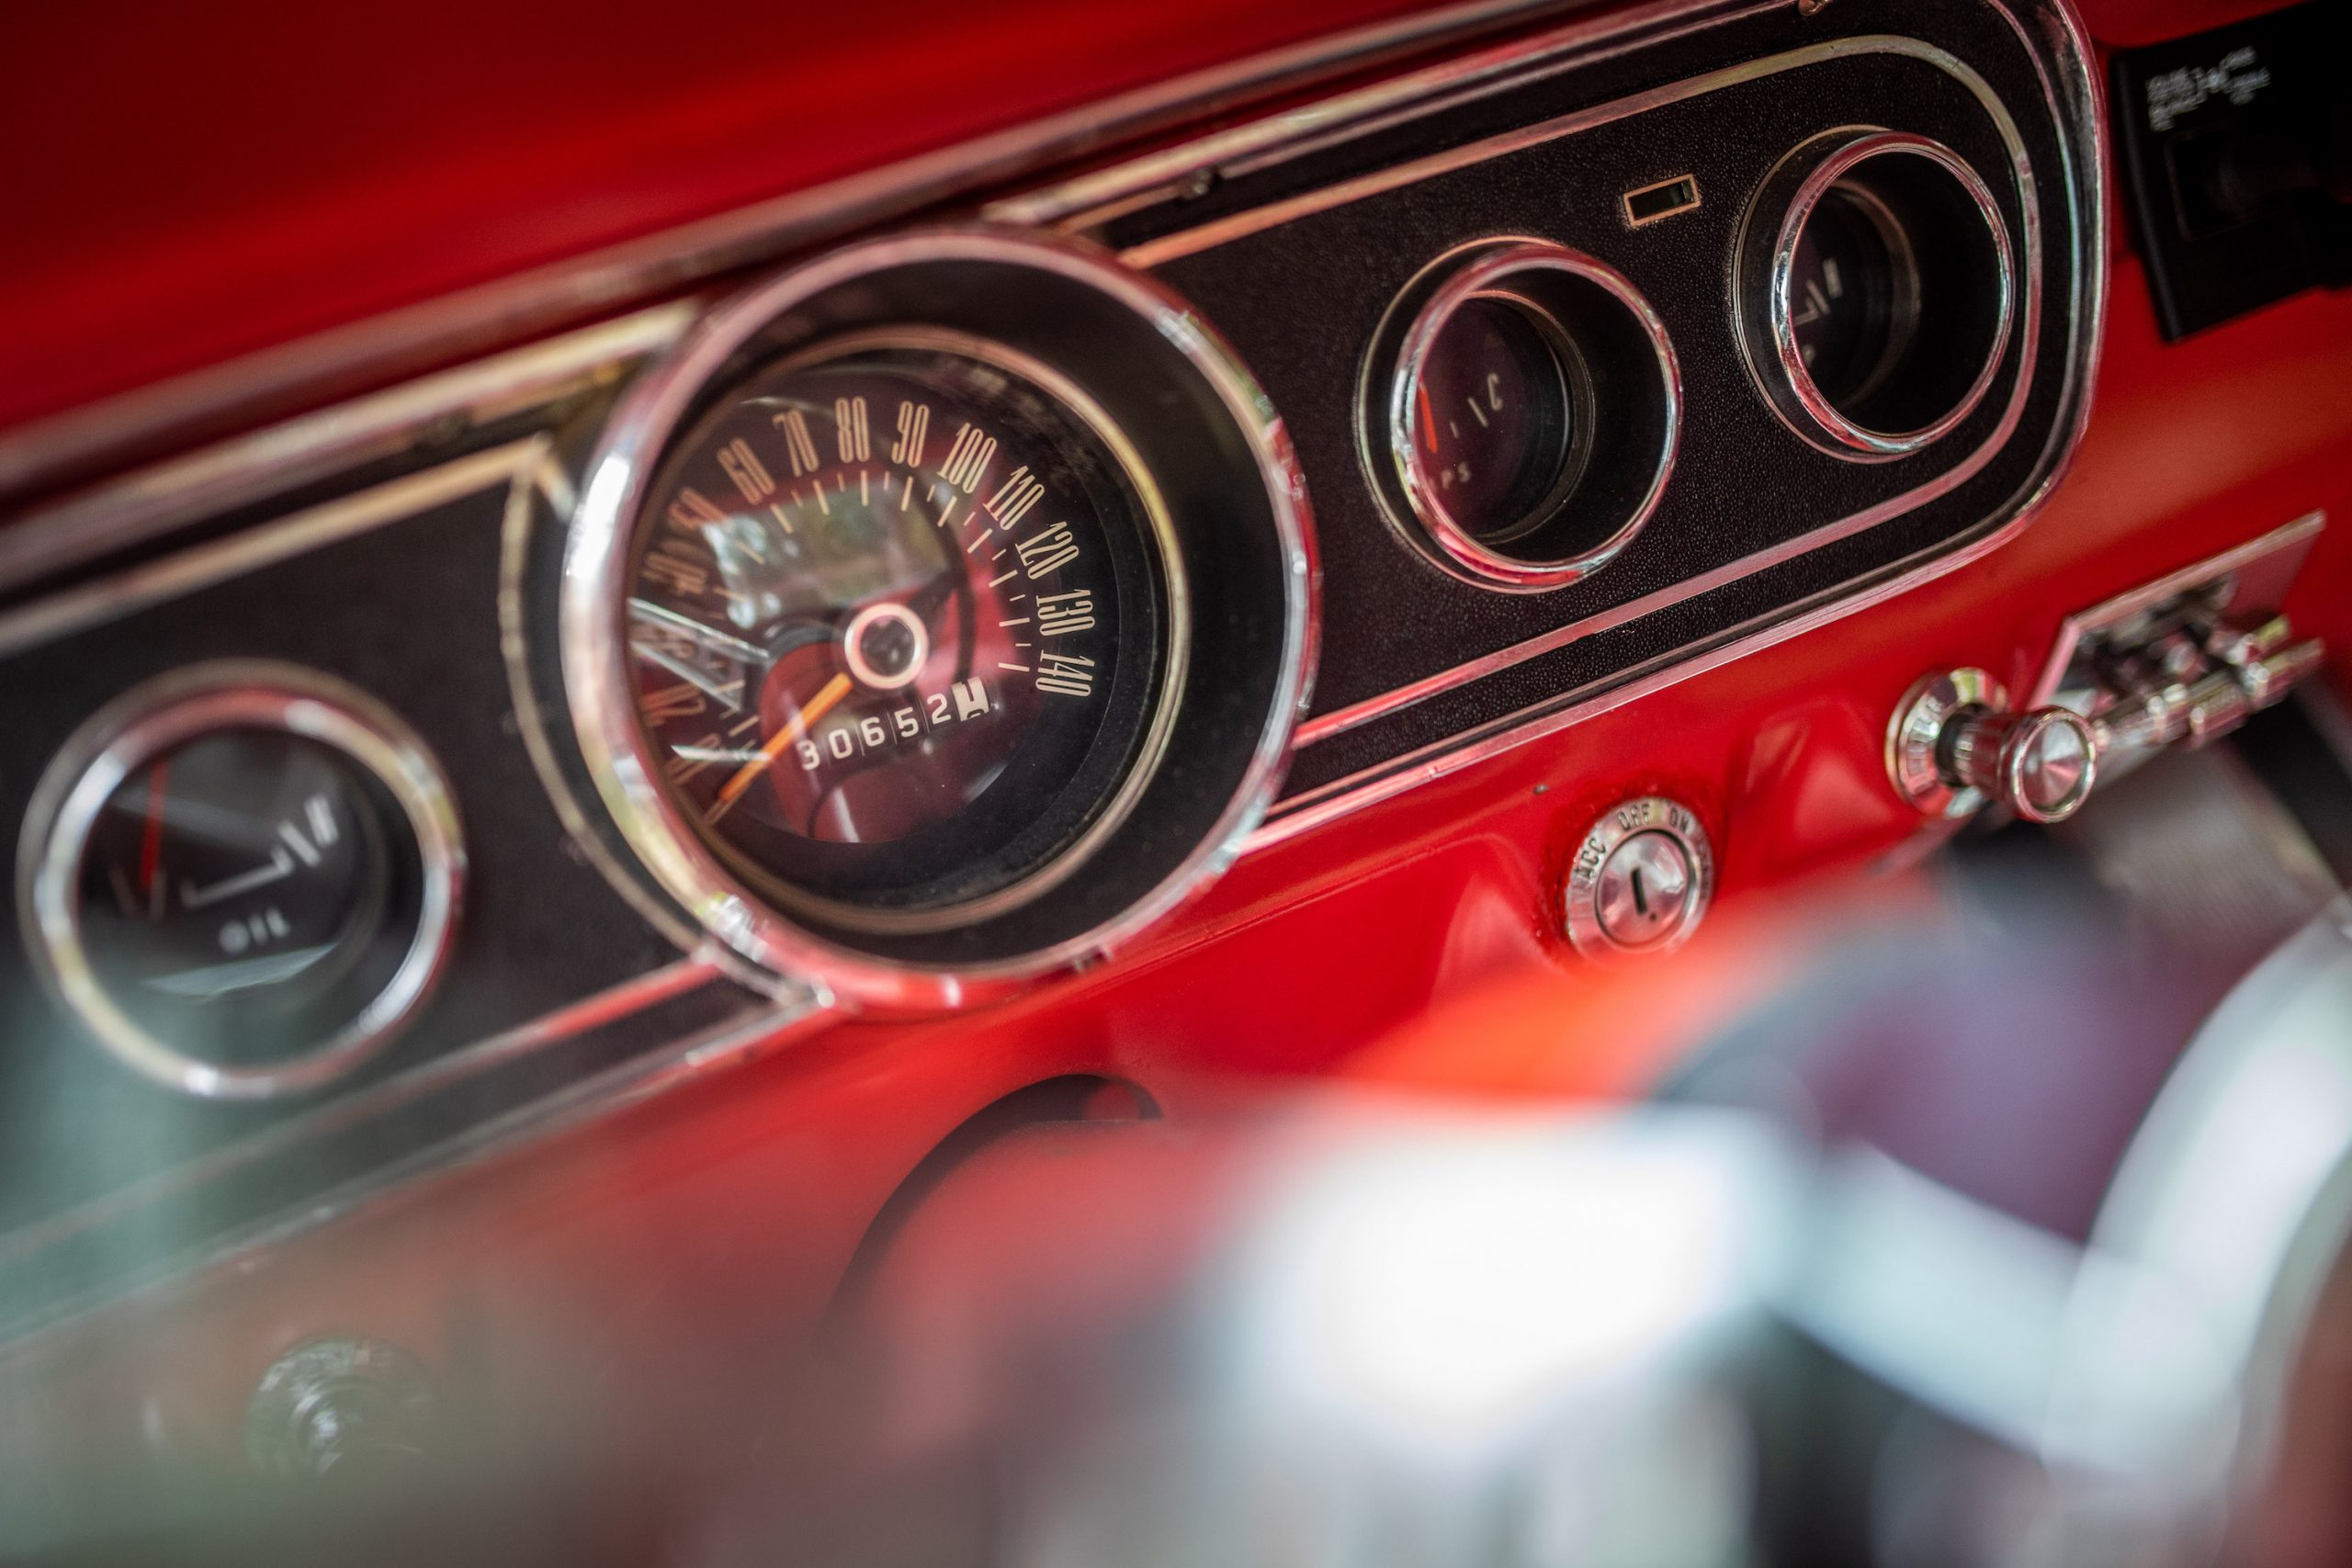 1965 Ford Mustang Speedometer Gauge